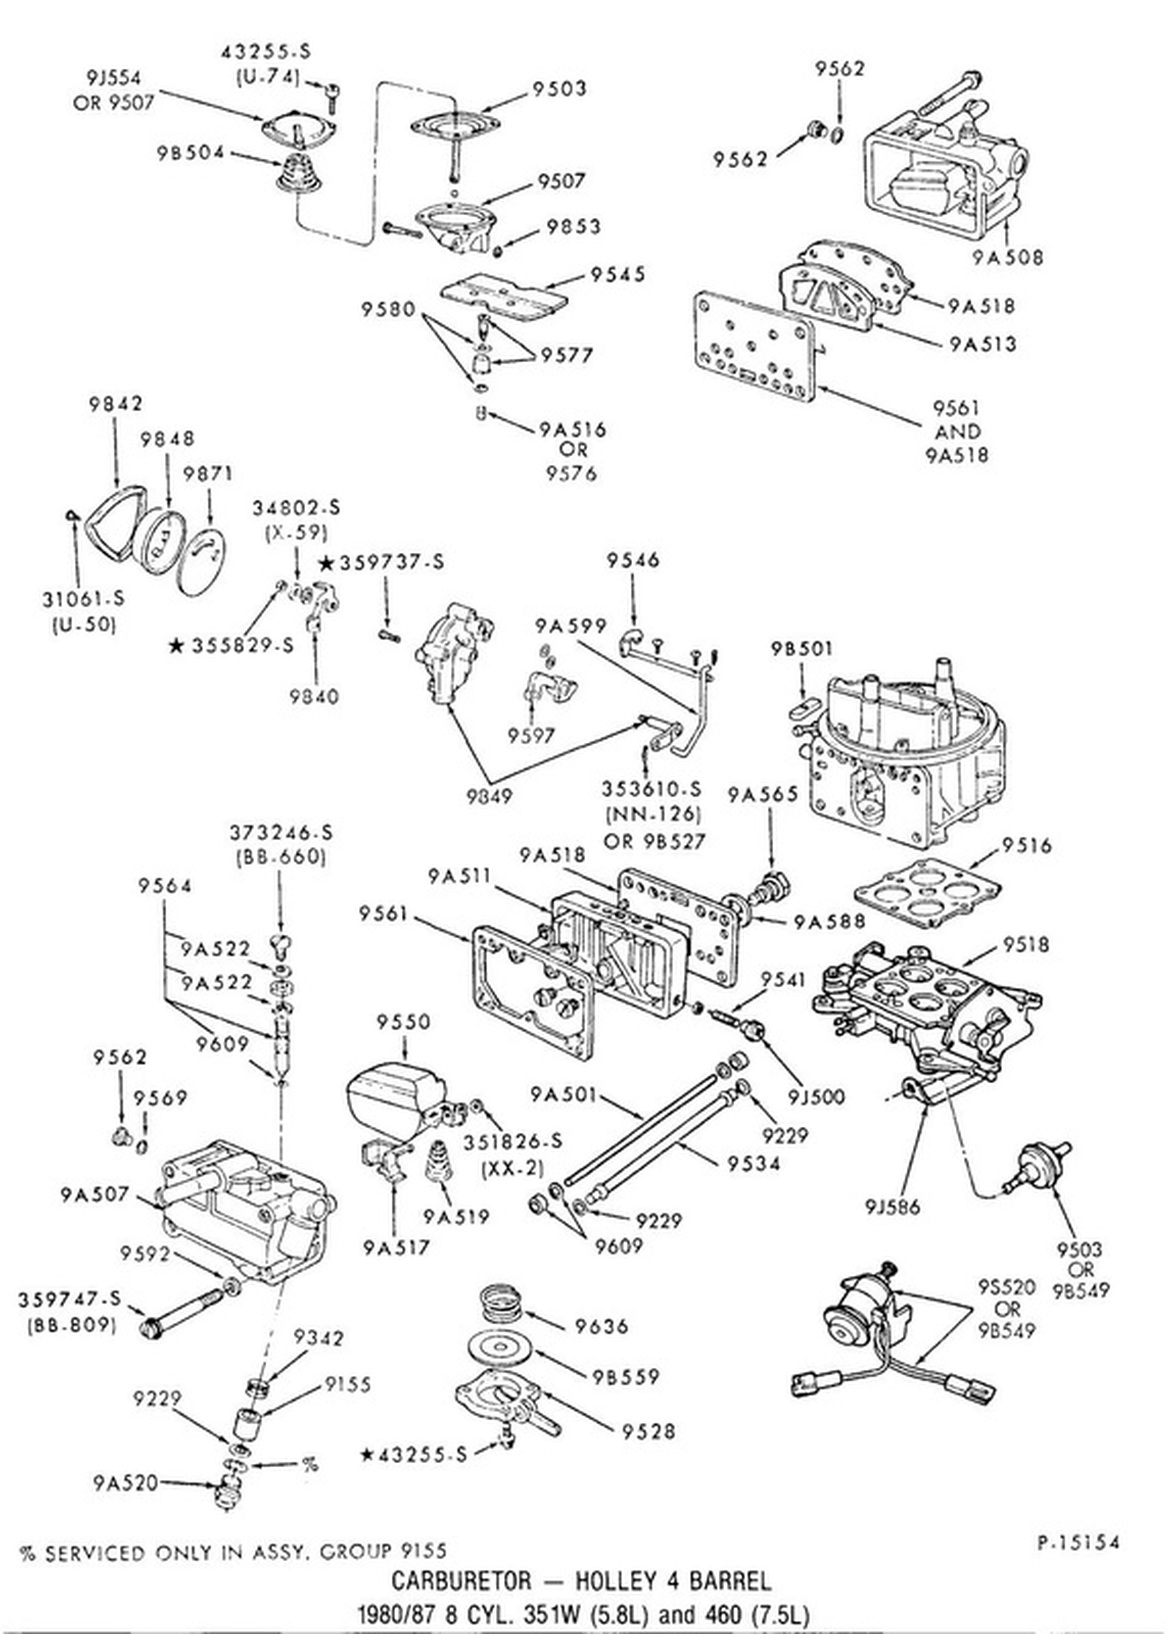 small resolution of how to use this document to use this document you need a carburetor part number starting with 95 5 if you don t have that then go to the page entitled